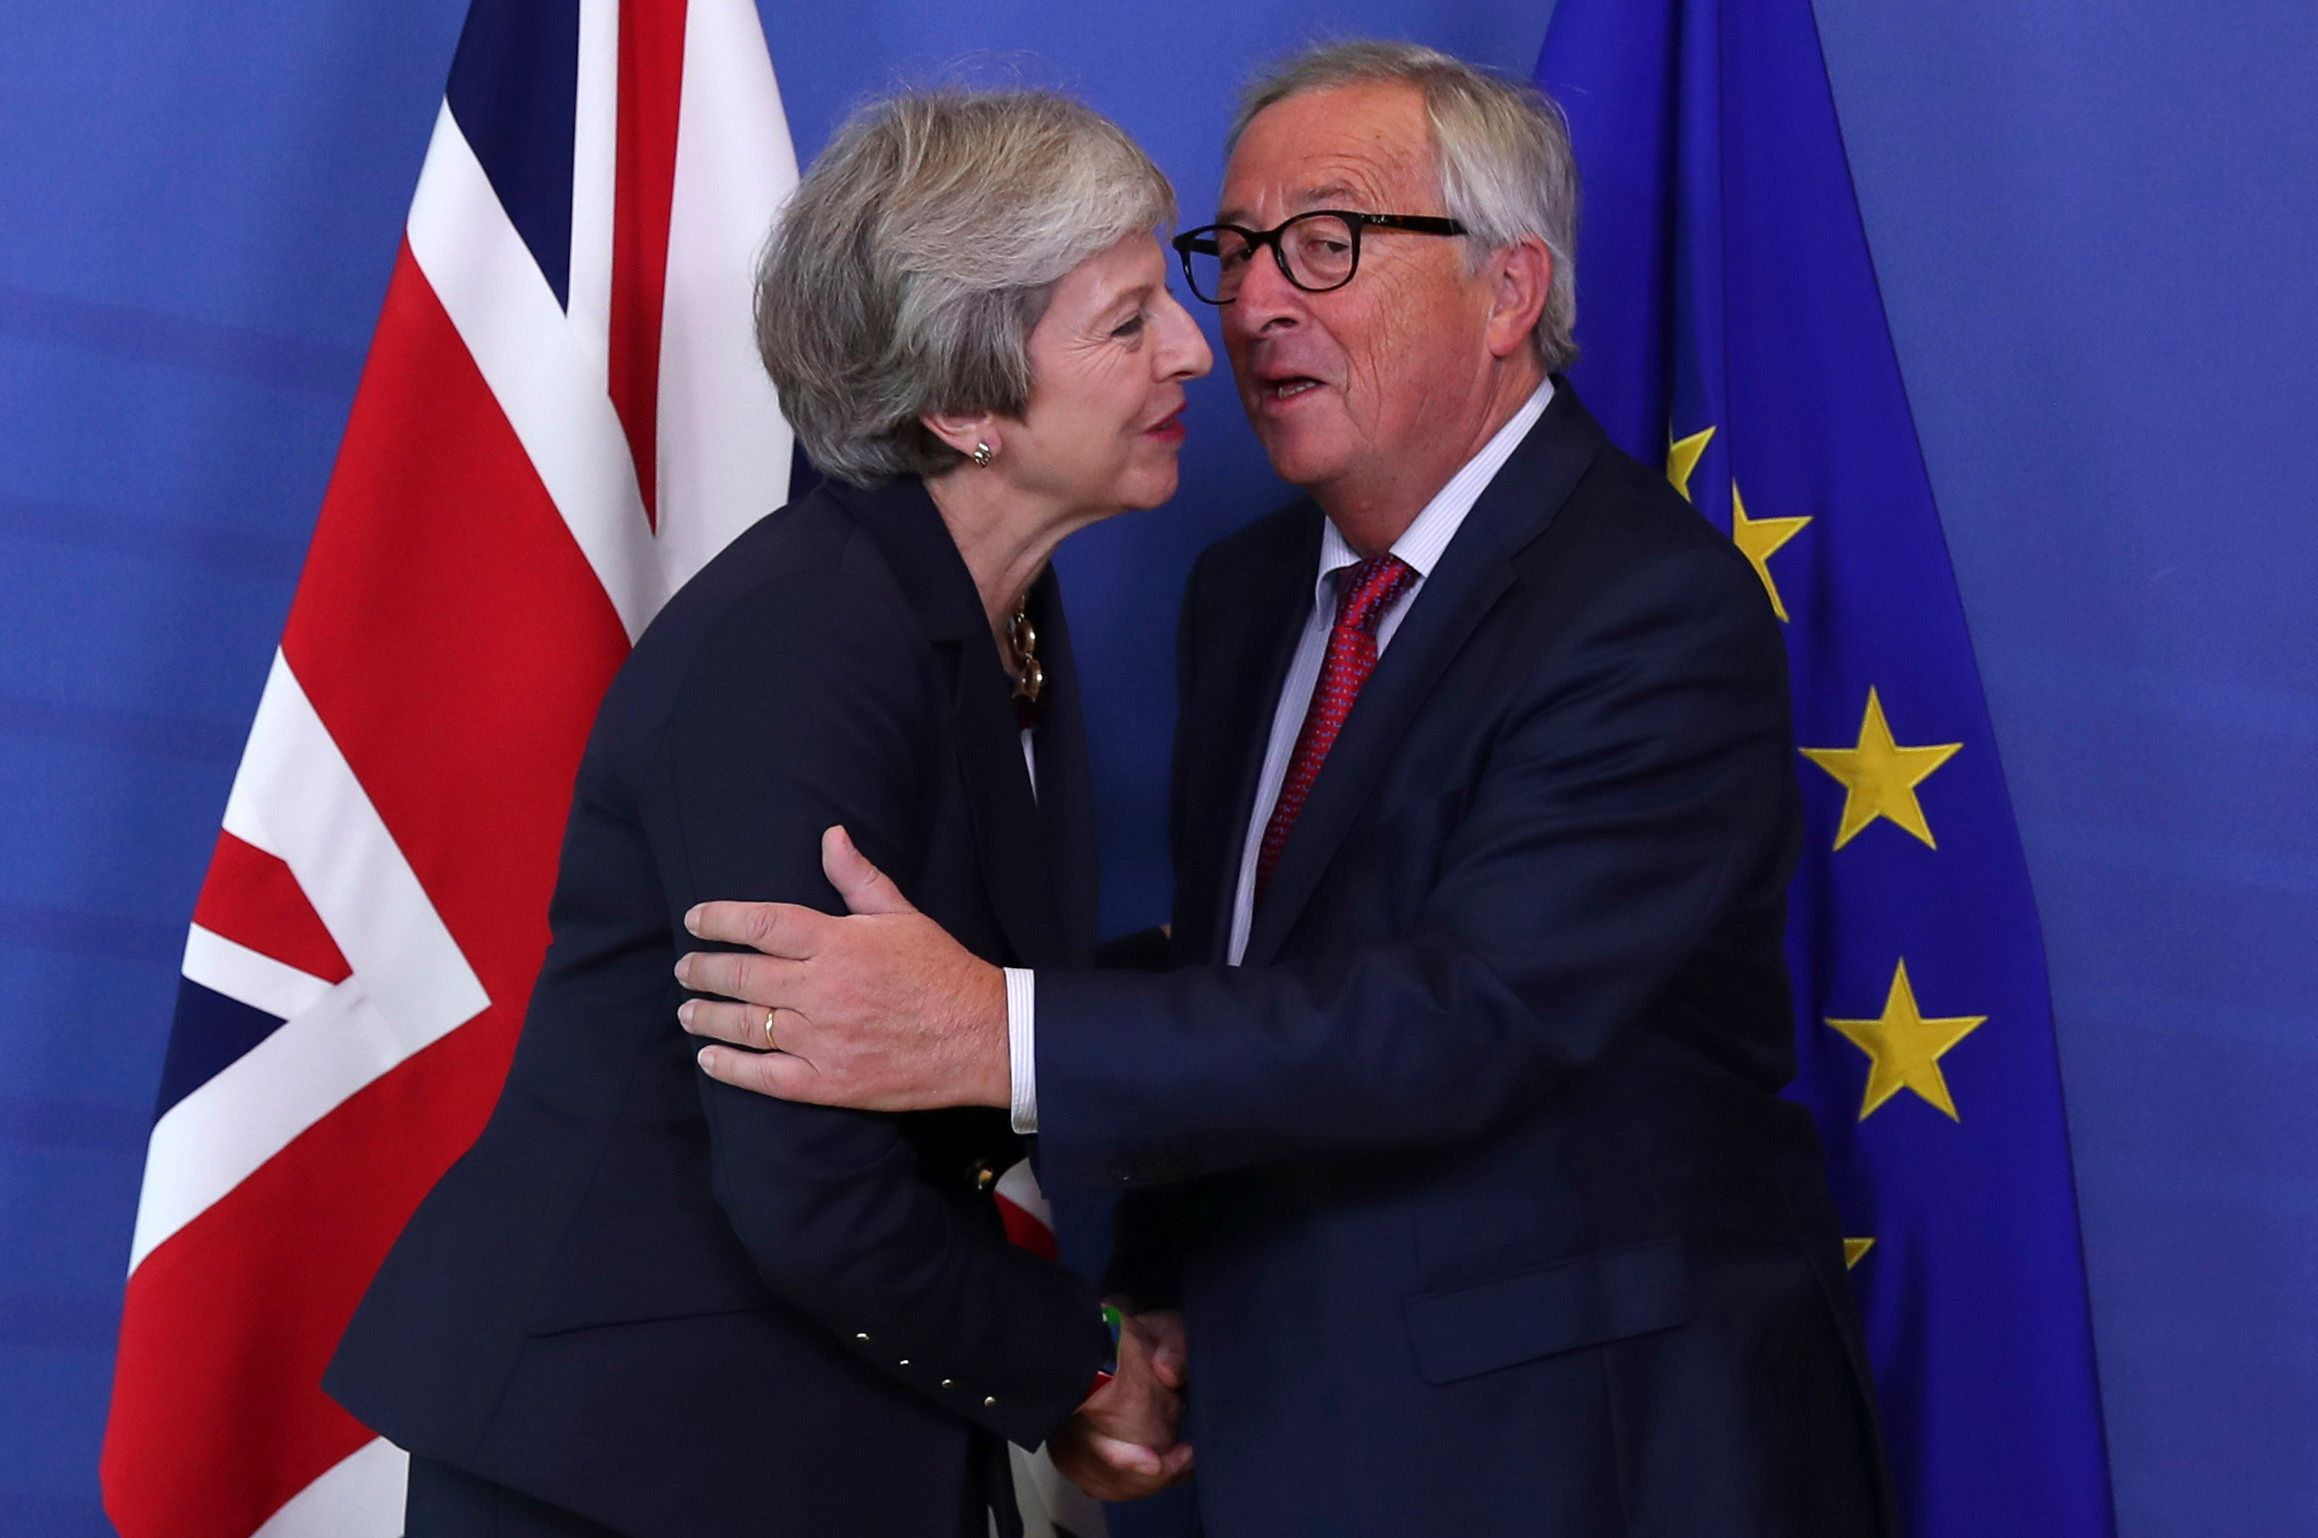 European Union leader's scathing put-down sums up Theresa May's Brexit talks